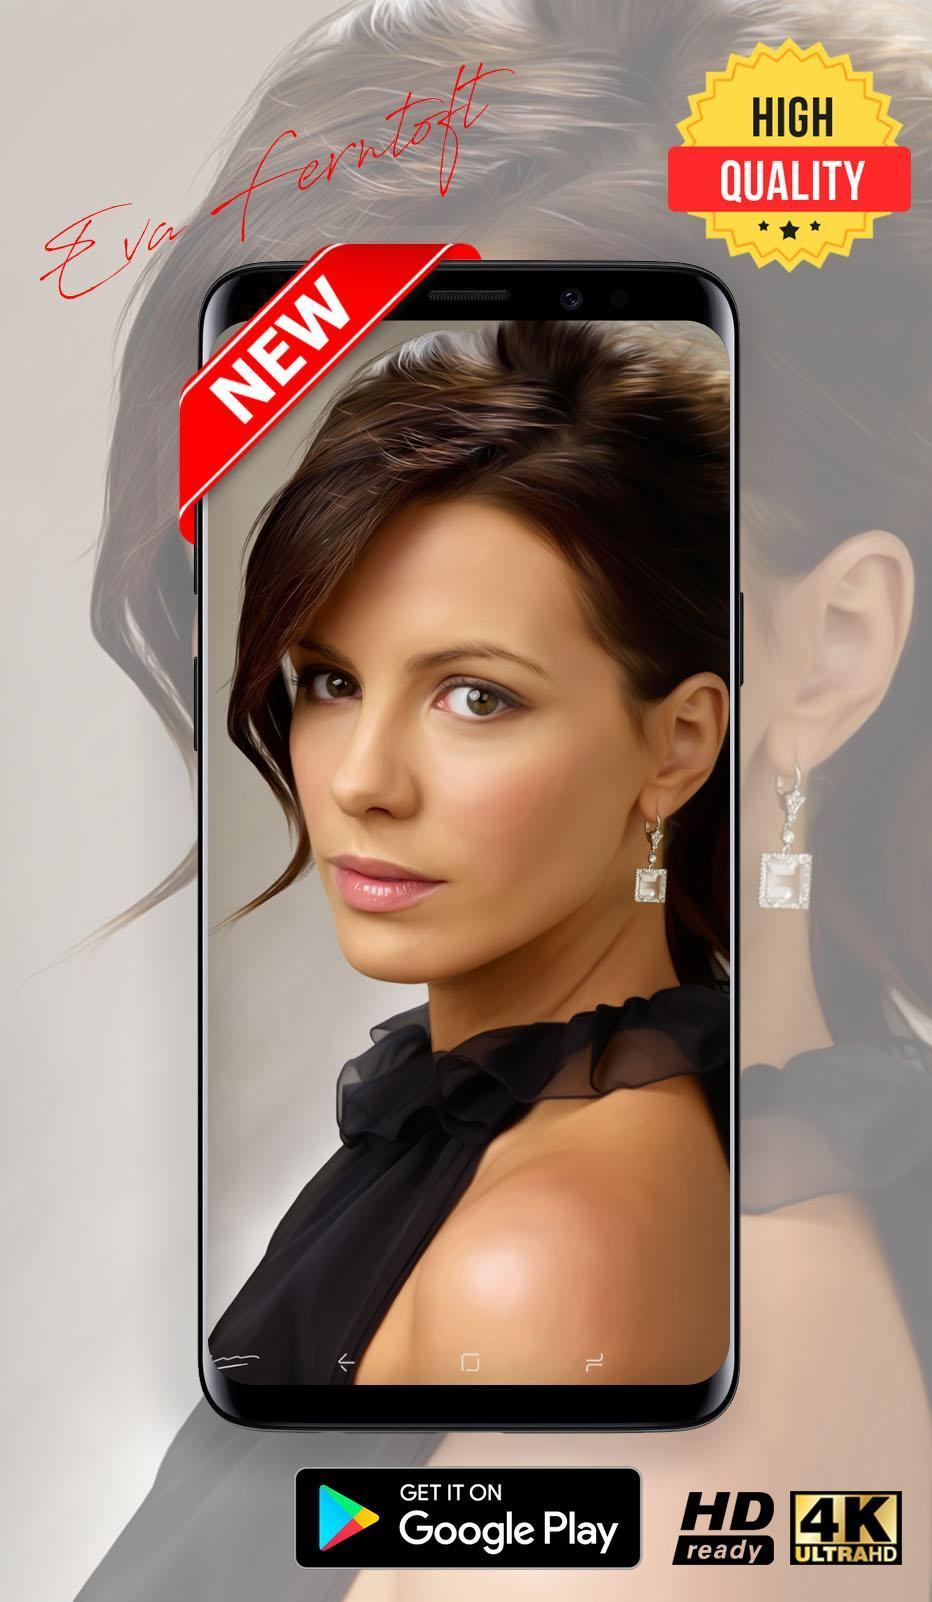 Kate Beckinsale Wallpapers Hd New For Android Apk Download